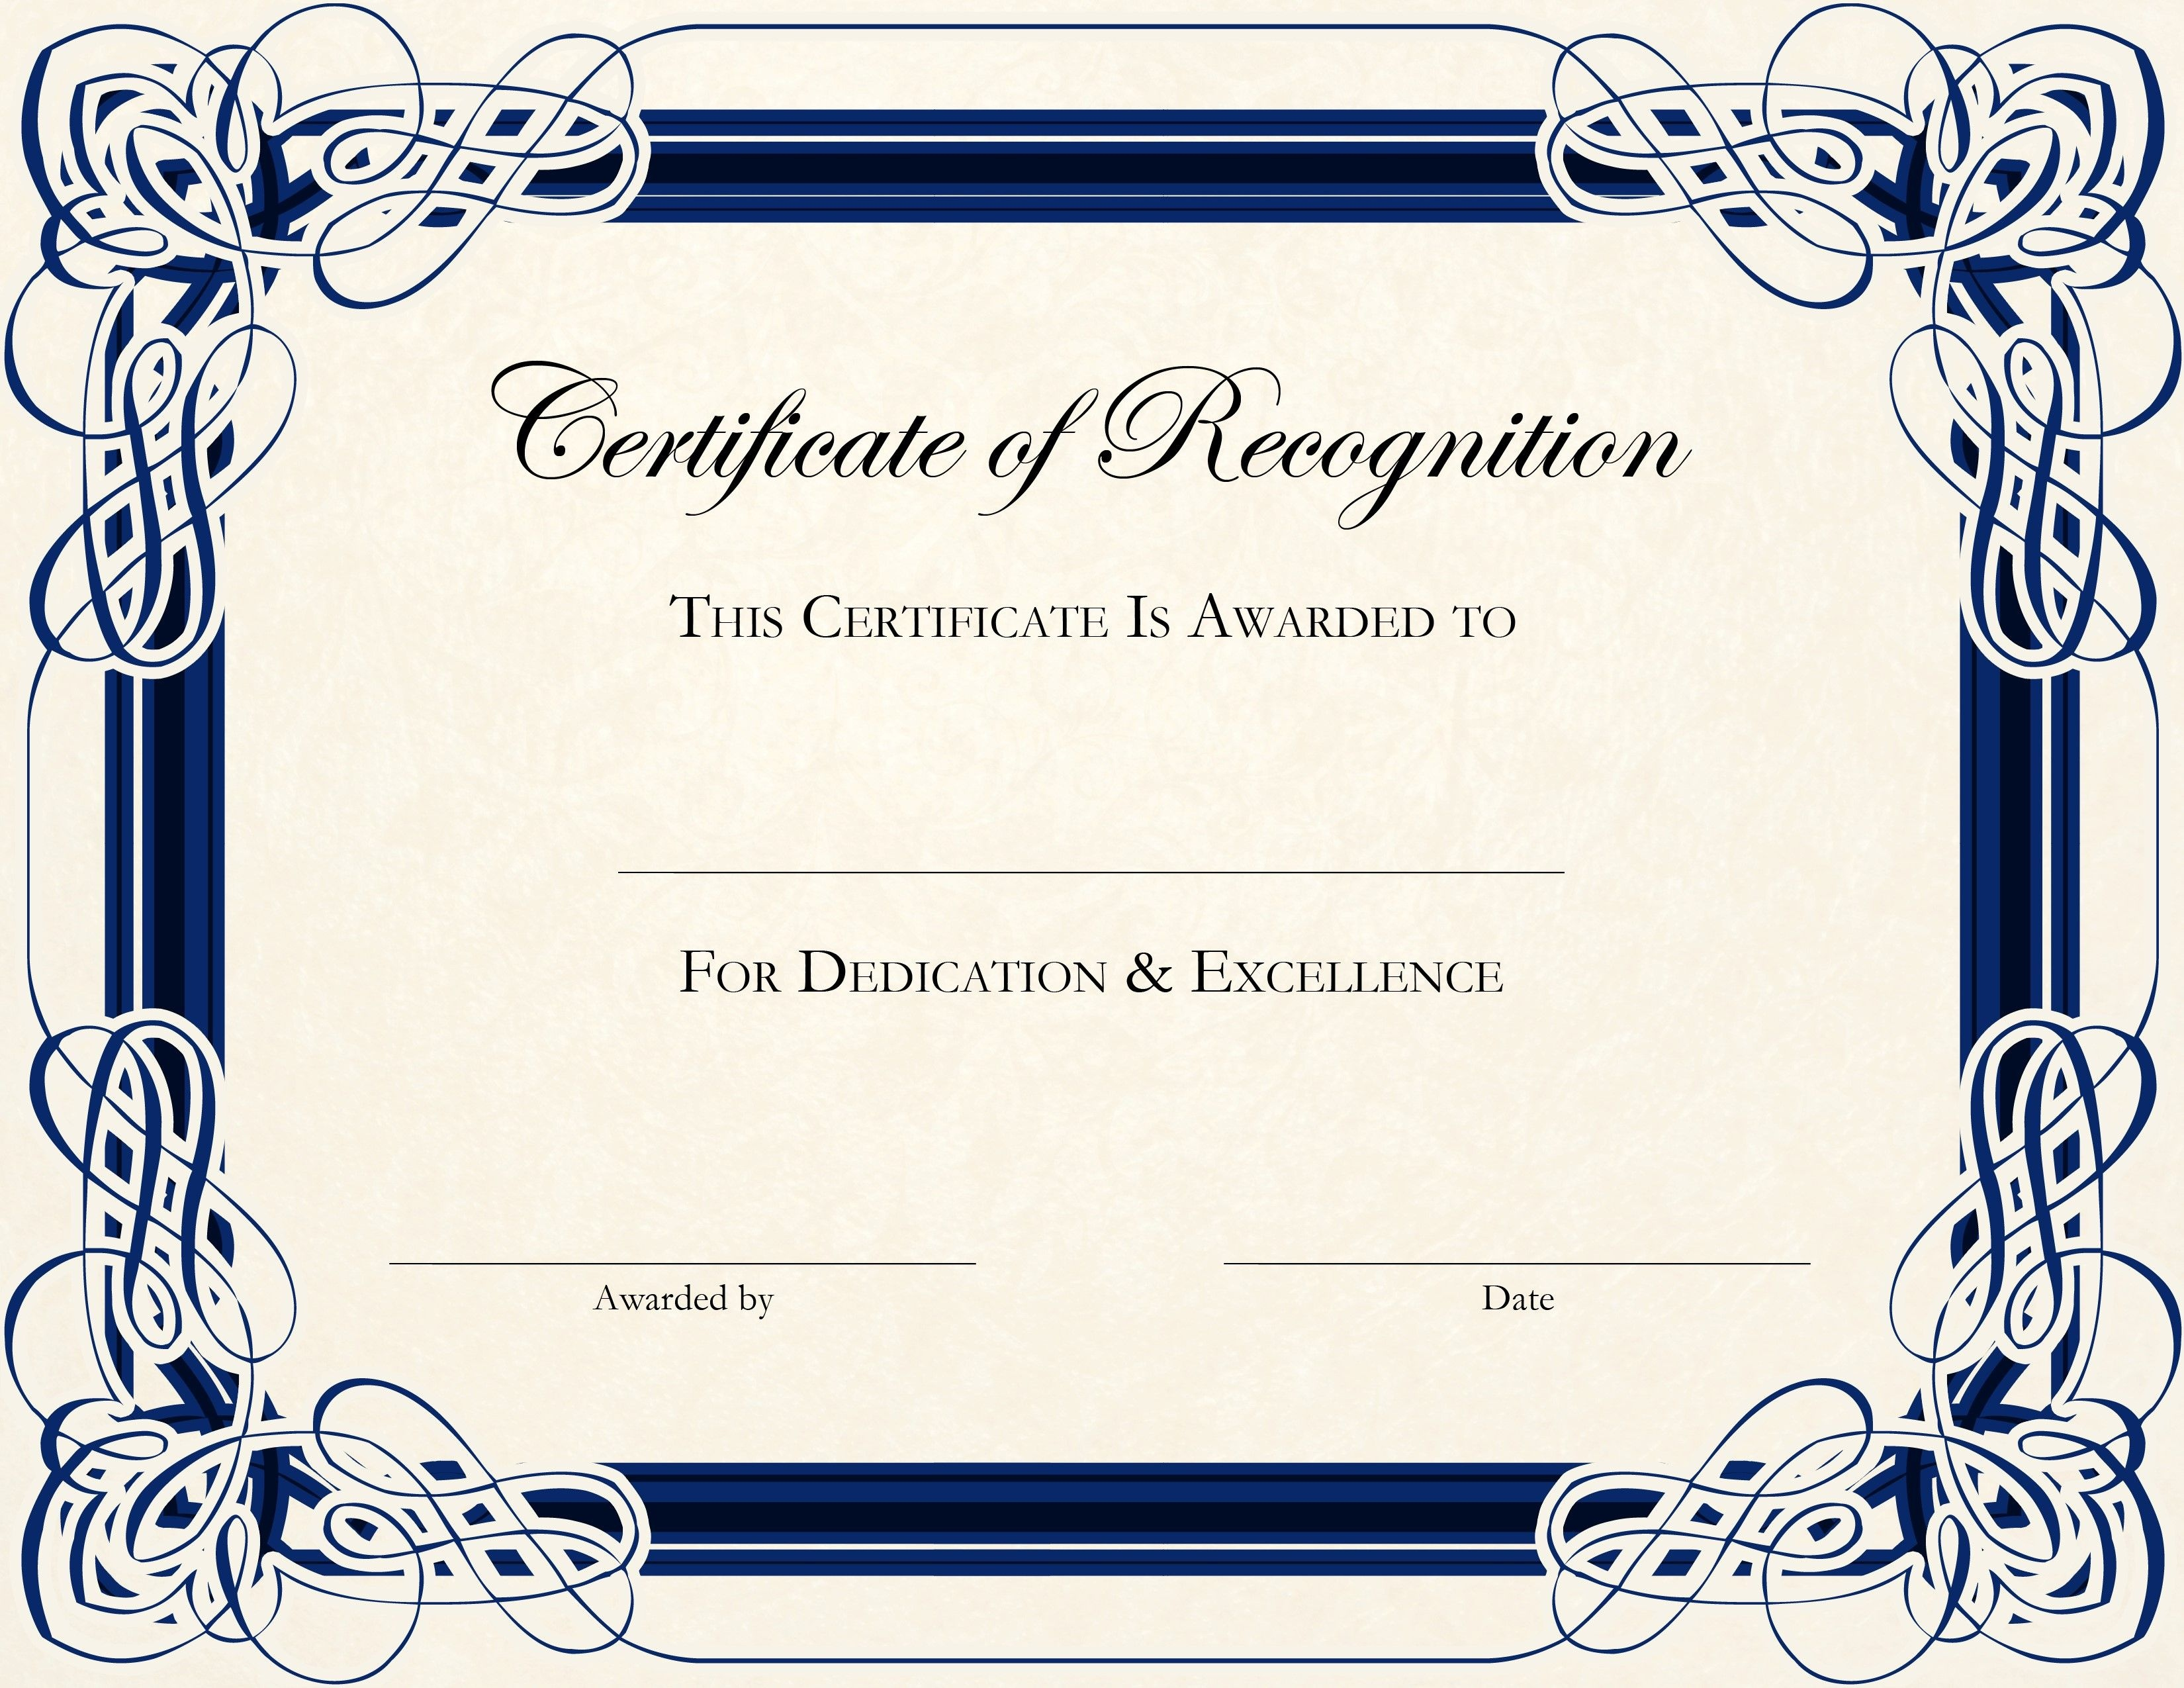 Free Printable Certificate Templates For Teachers   Besttemplate123 - Free Printable Certificate Templates